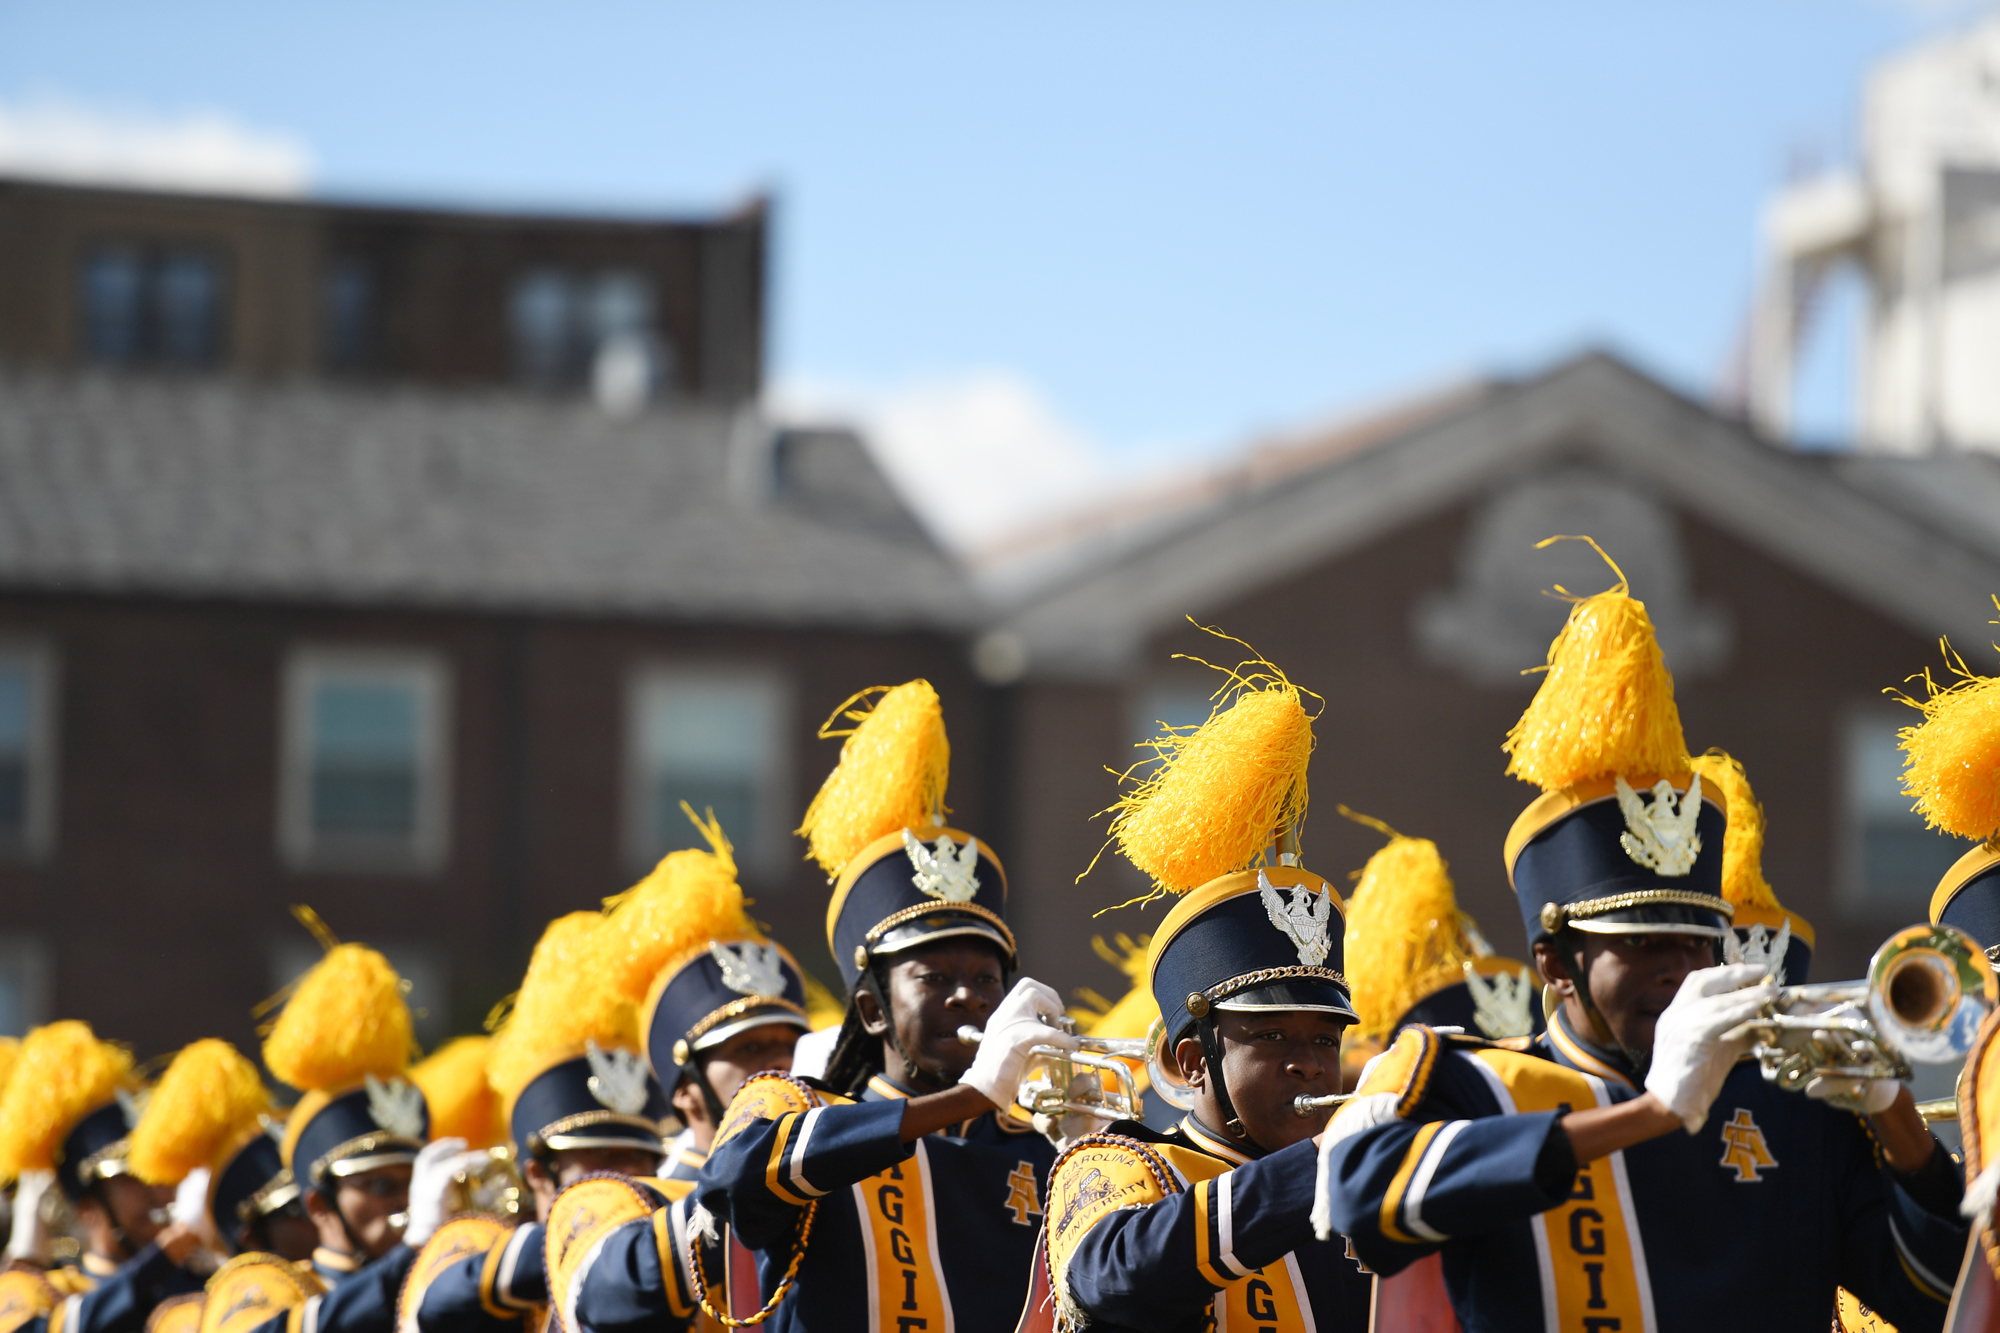 Members of the North Carolina A&T Aggies band perform during halftime of the Howard Homecoming game between Howard and North Carolina A&T on October 22, 2016 in Washington D.C. The Aggies defeated the Bison 34-7.